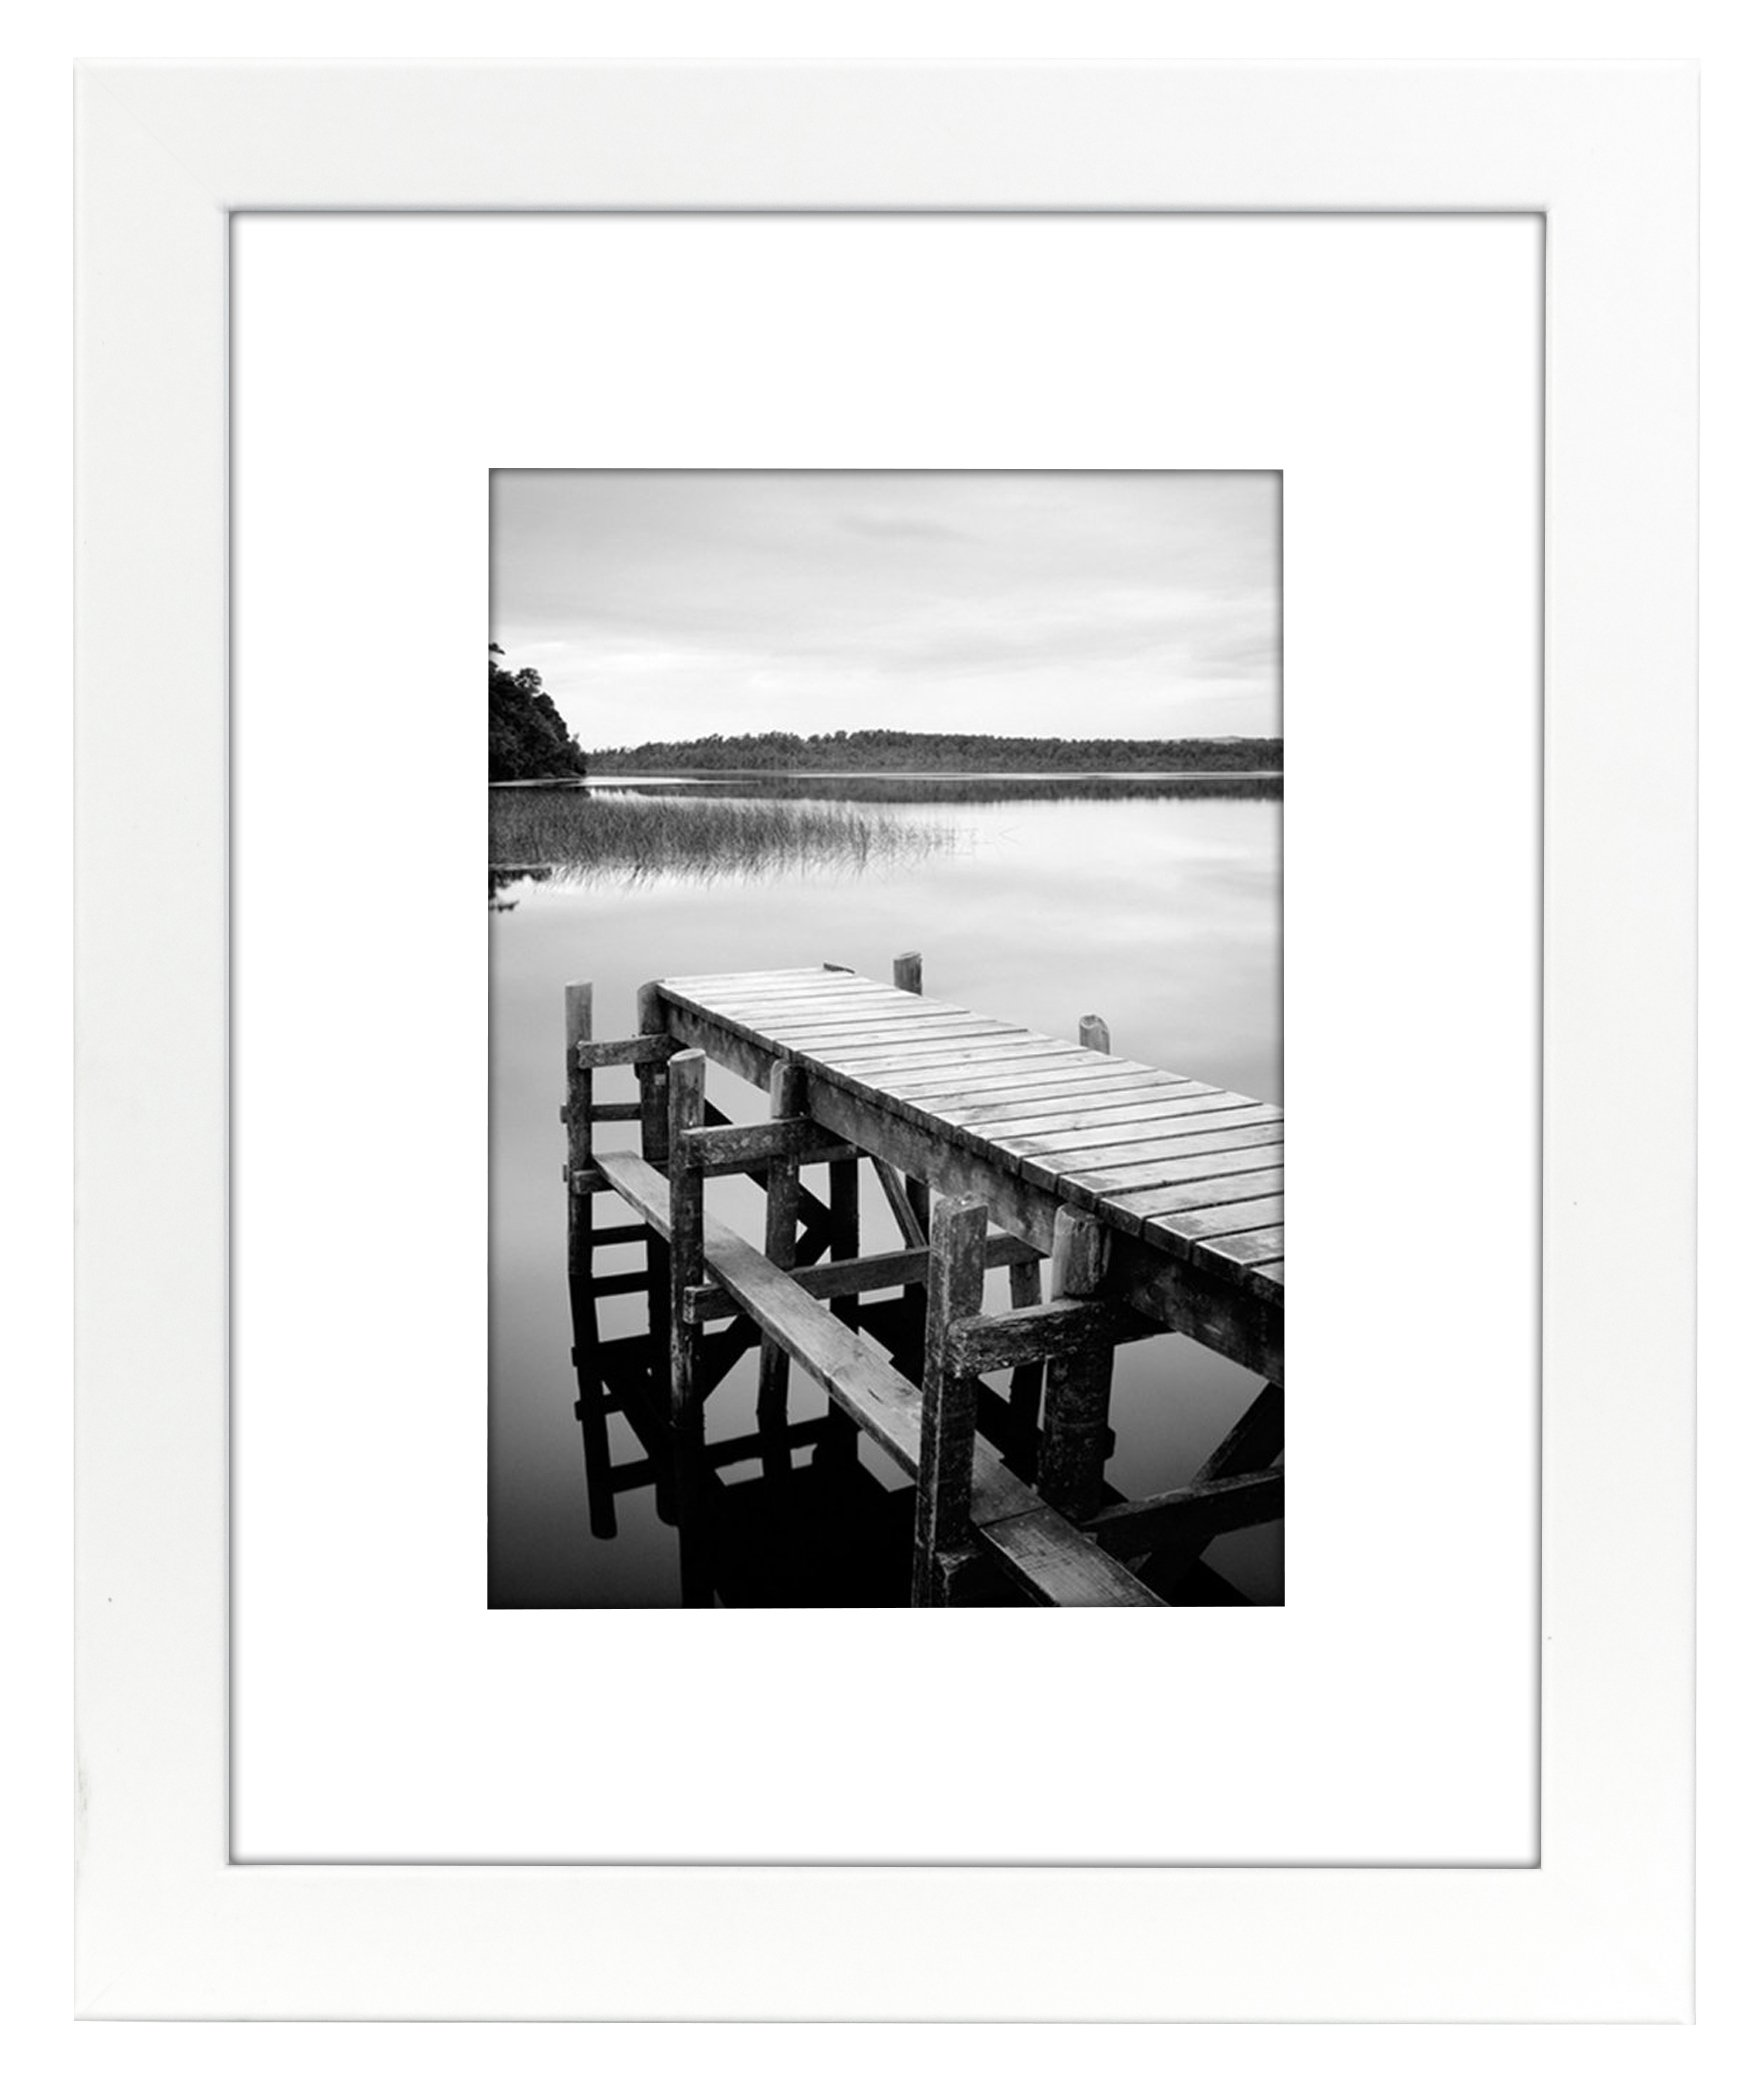 Americanflat 8x10 White Picture Frame - Matted to Display Photographs 5x7 or 8x10 Without Mat - Highest Quality Materials - Ready to Display on Table Top by Americanflat